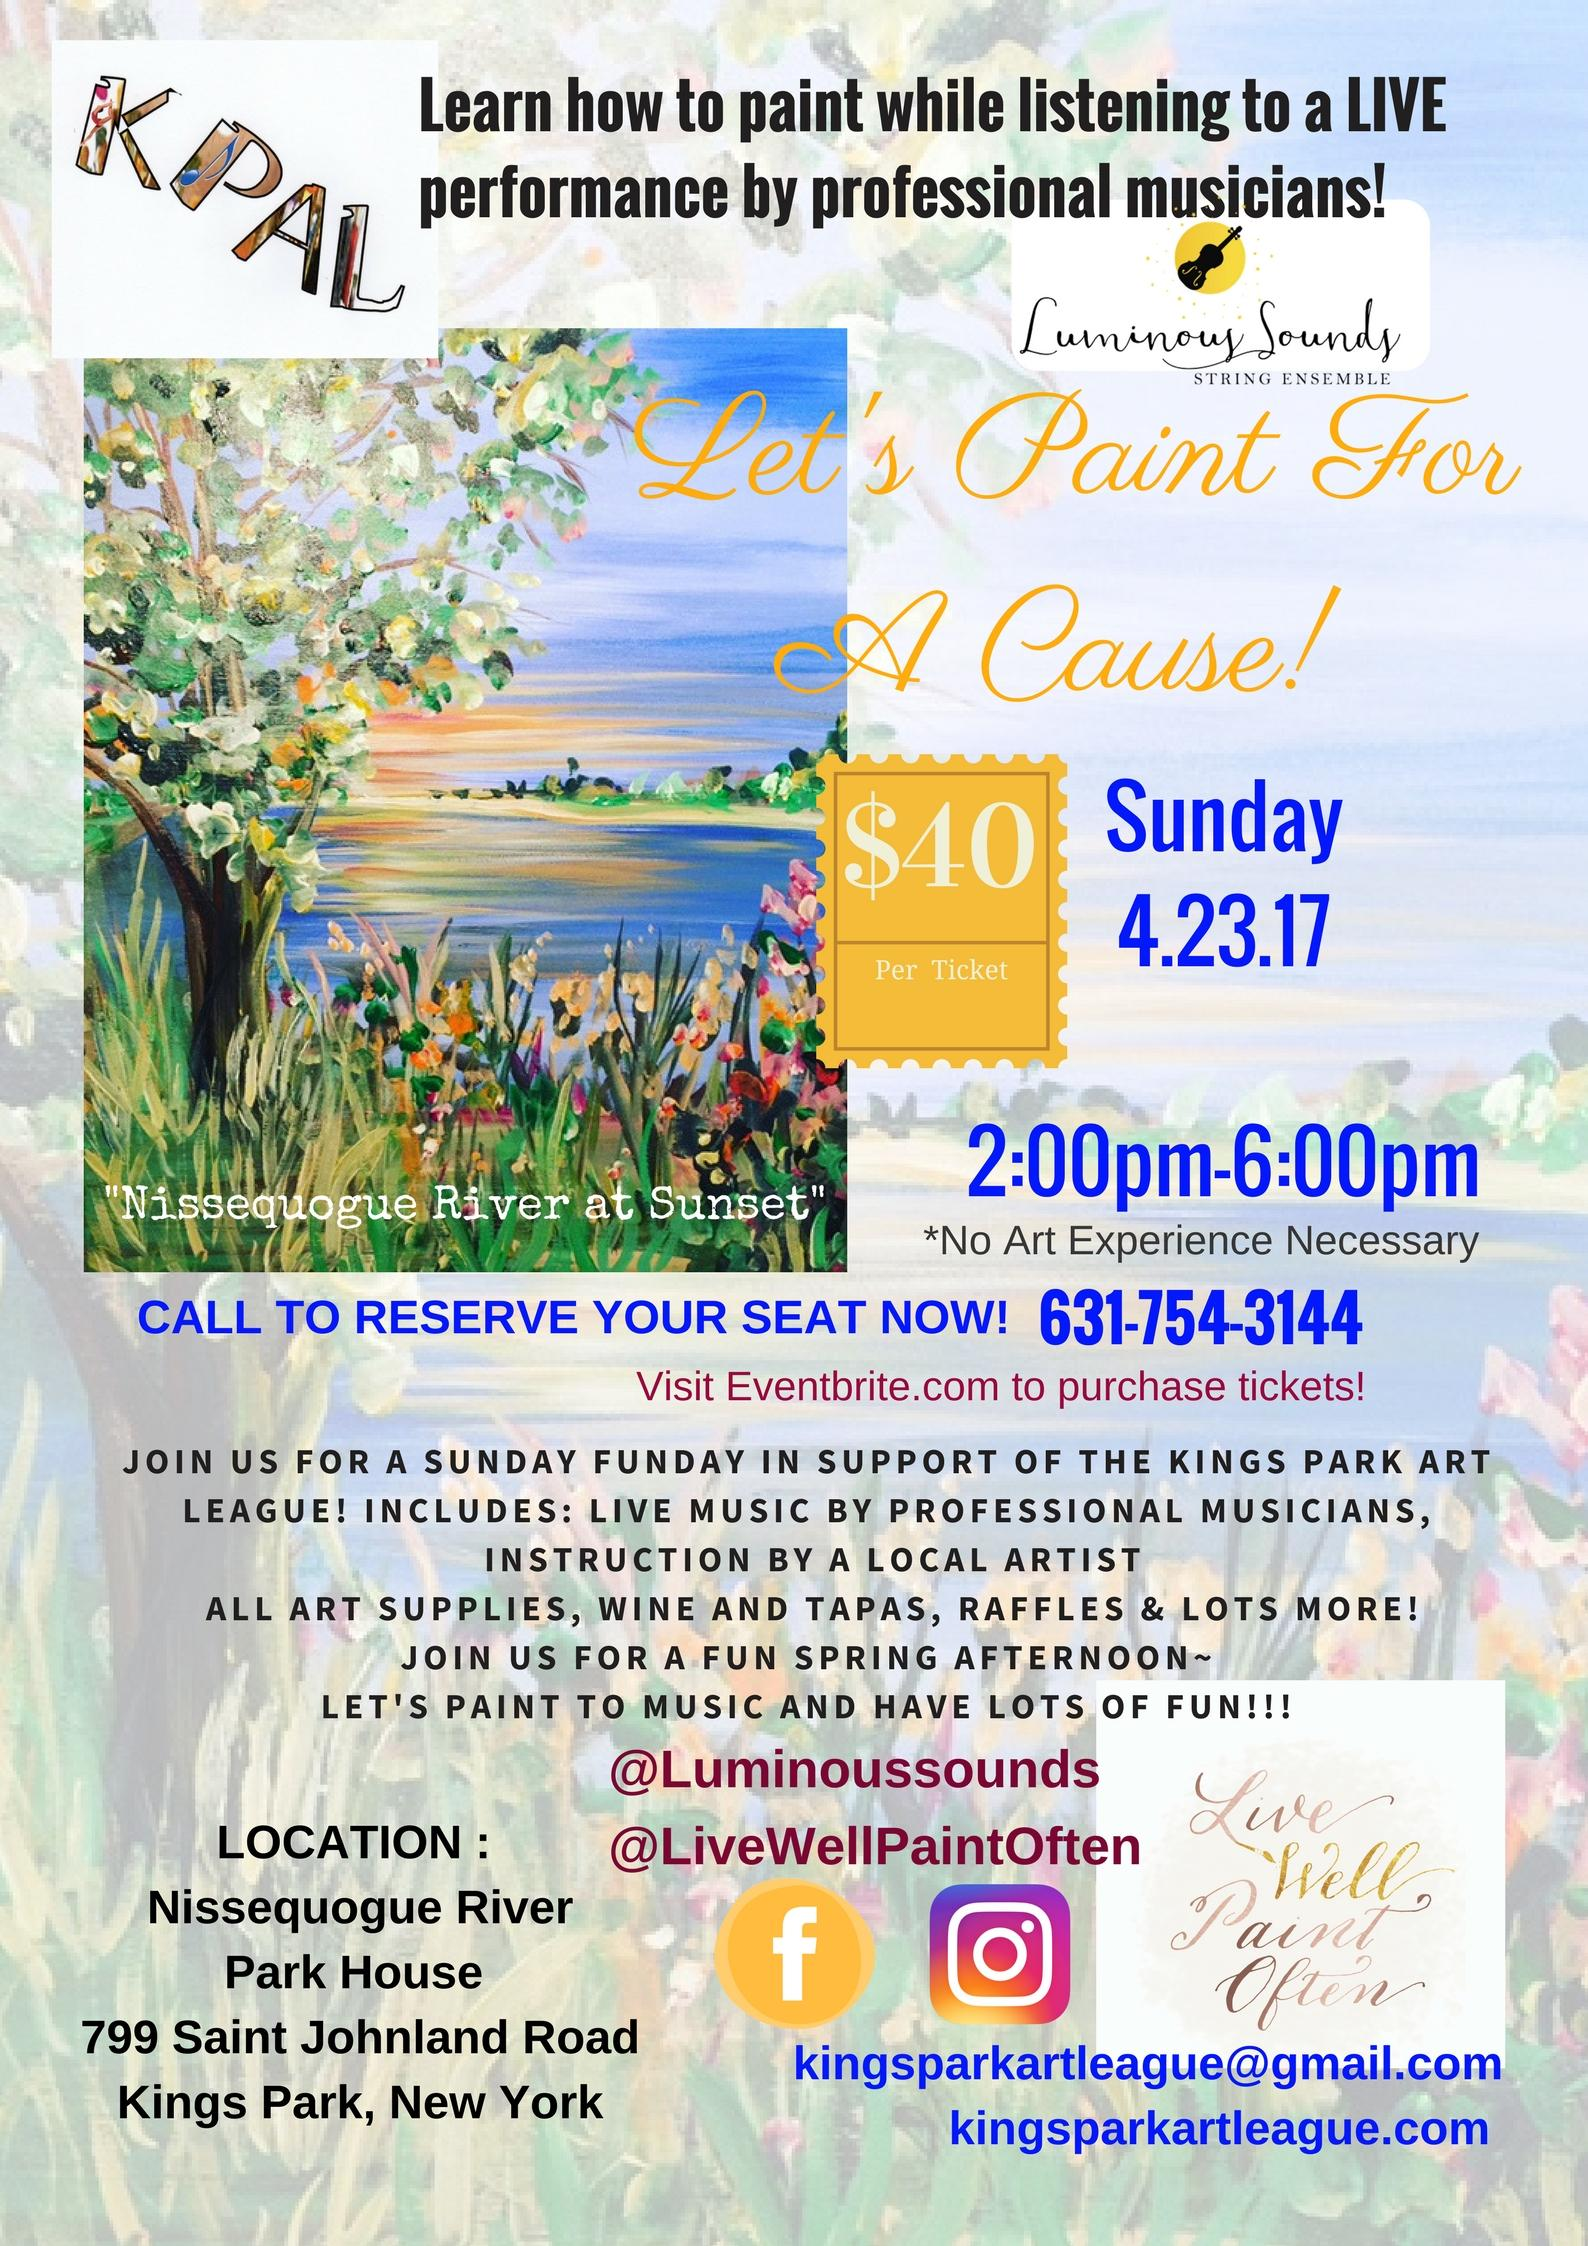 Let's Paint For A Cause!